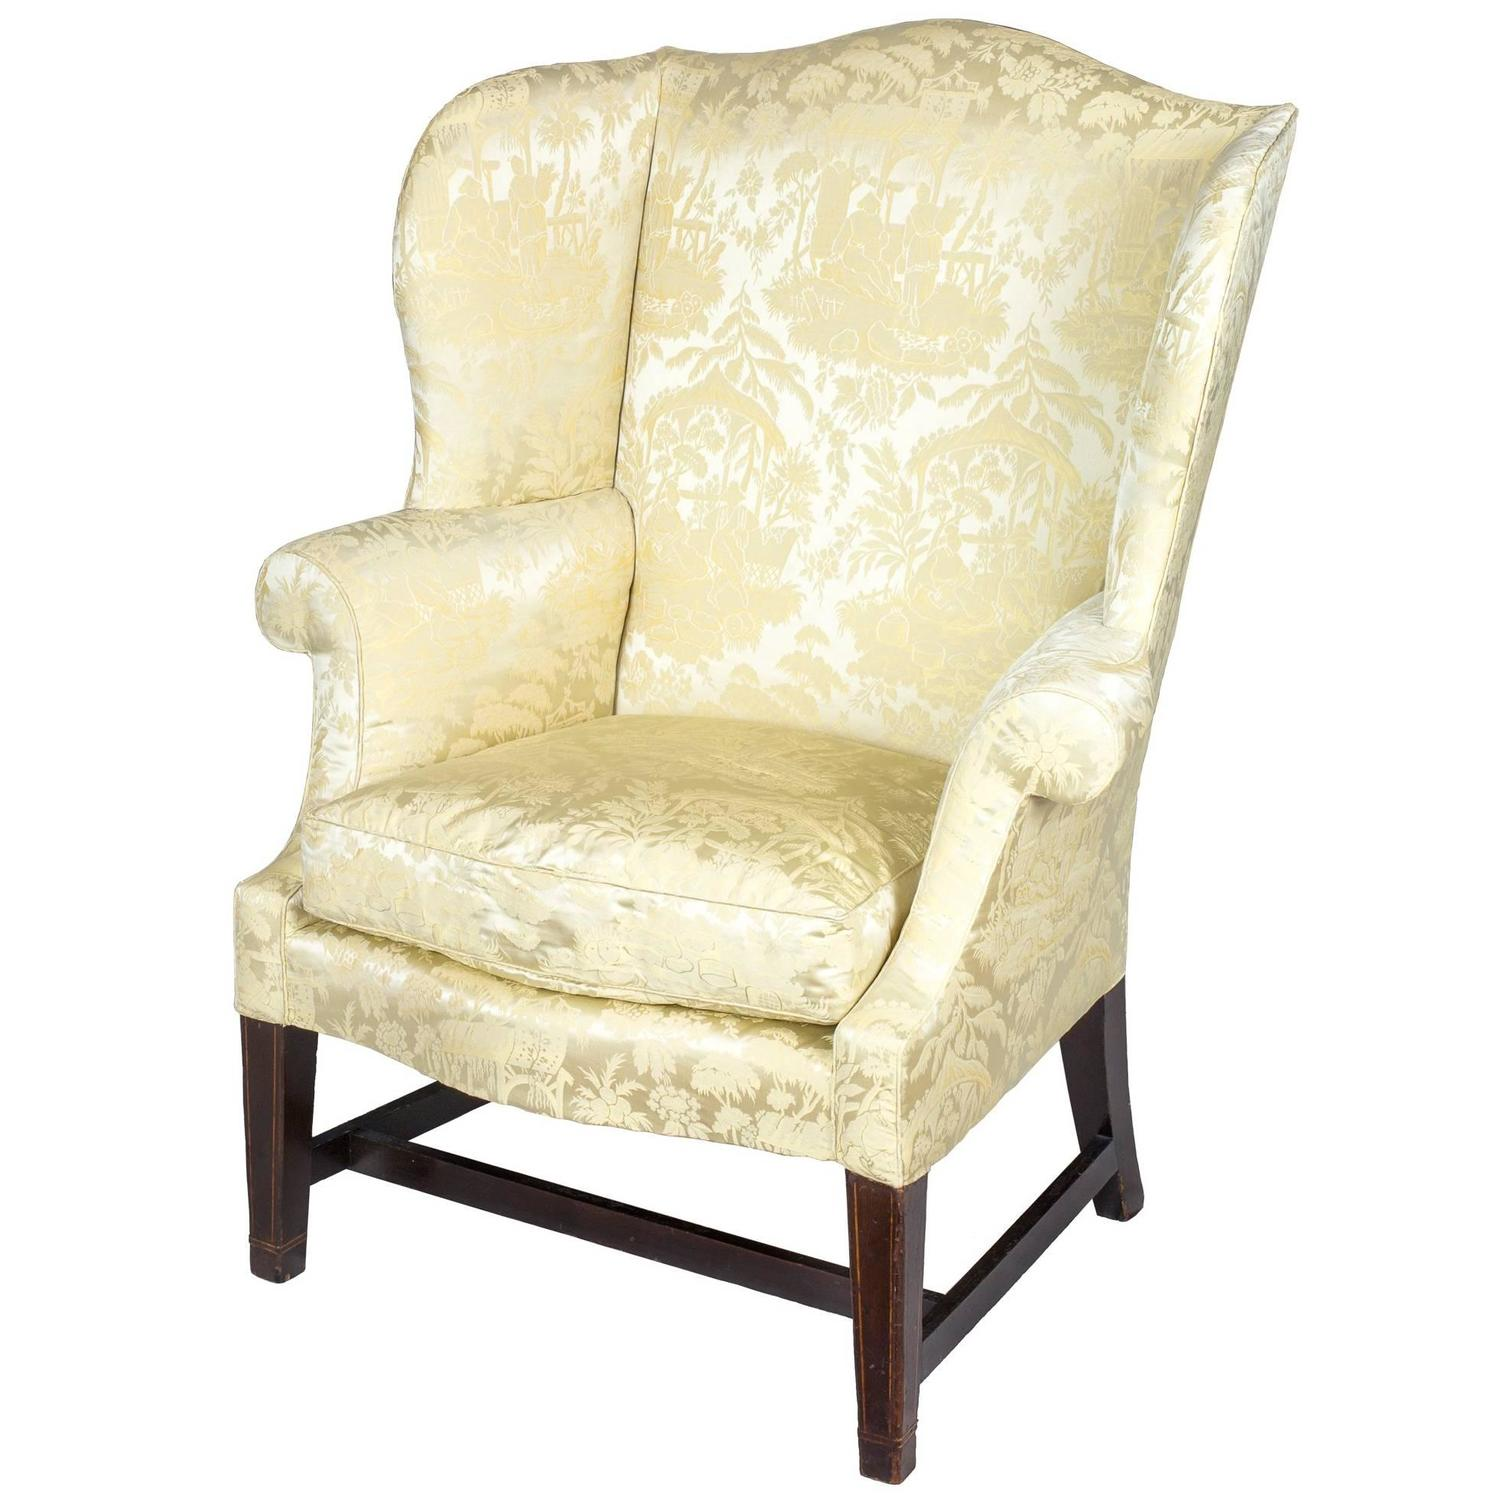 Small Hepplewhite Inlaid Mahogany Wing Chair, Philadelphia, Israel Sack